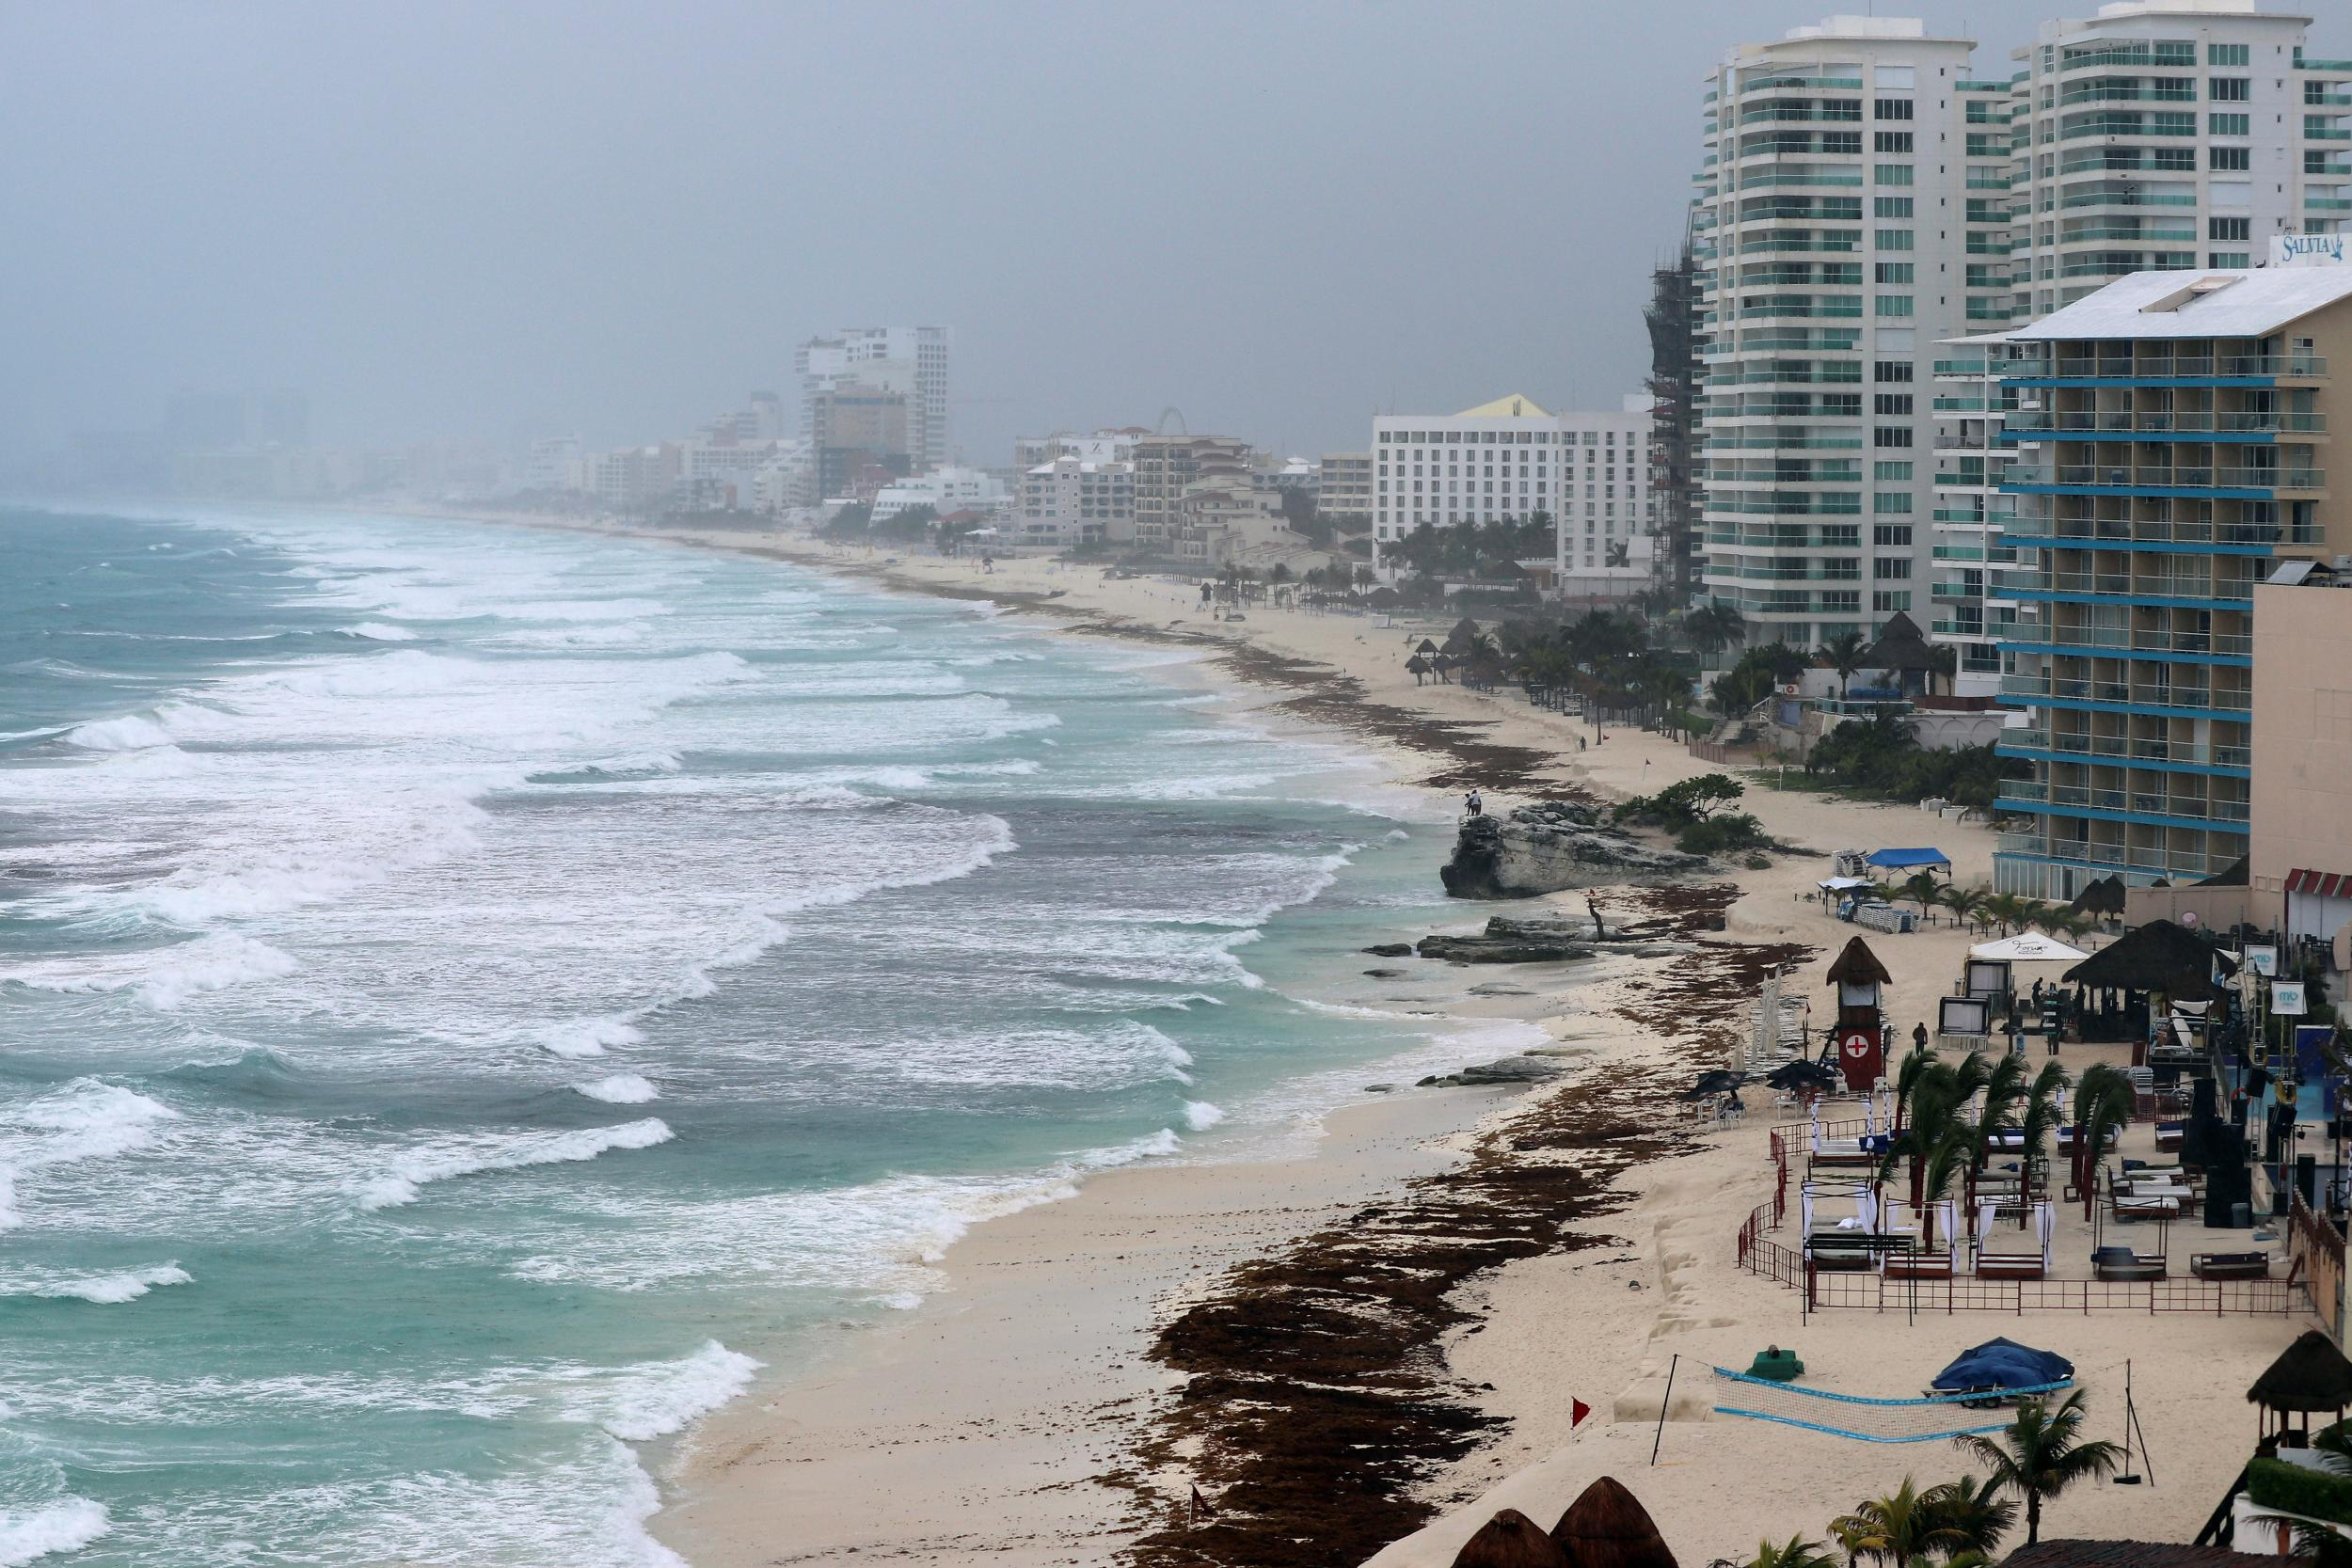 Subtropical Storm Alberto: Emergency warnings issued with torrential rain expected to batter Florida, Louisiana, Mississippi and Alabama